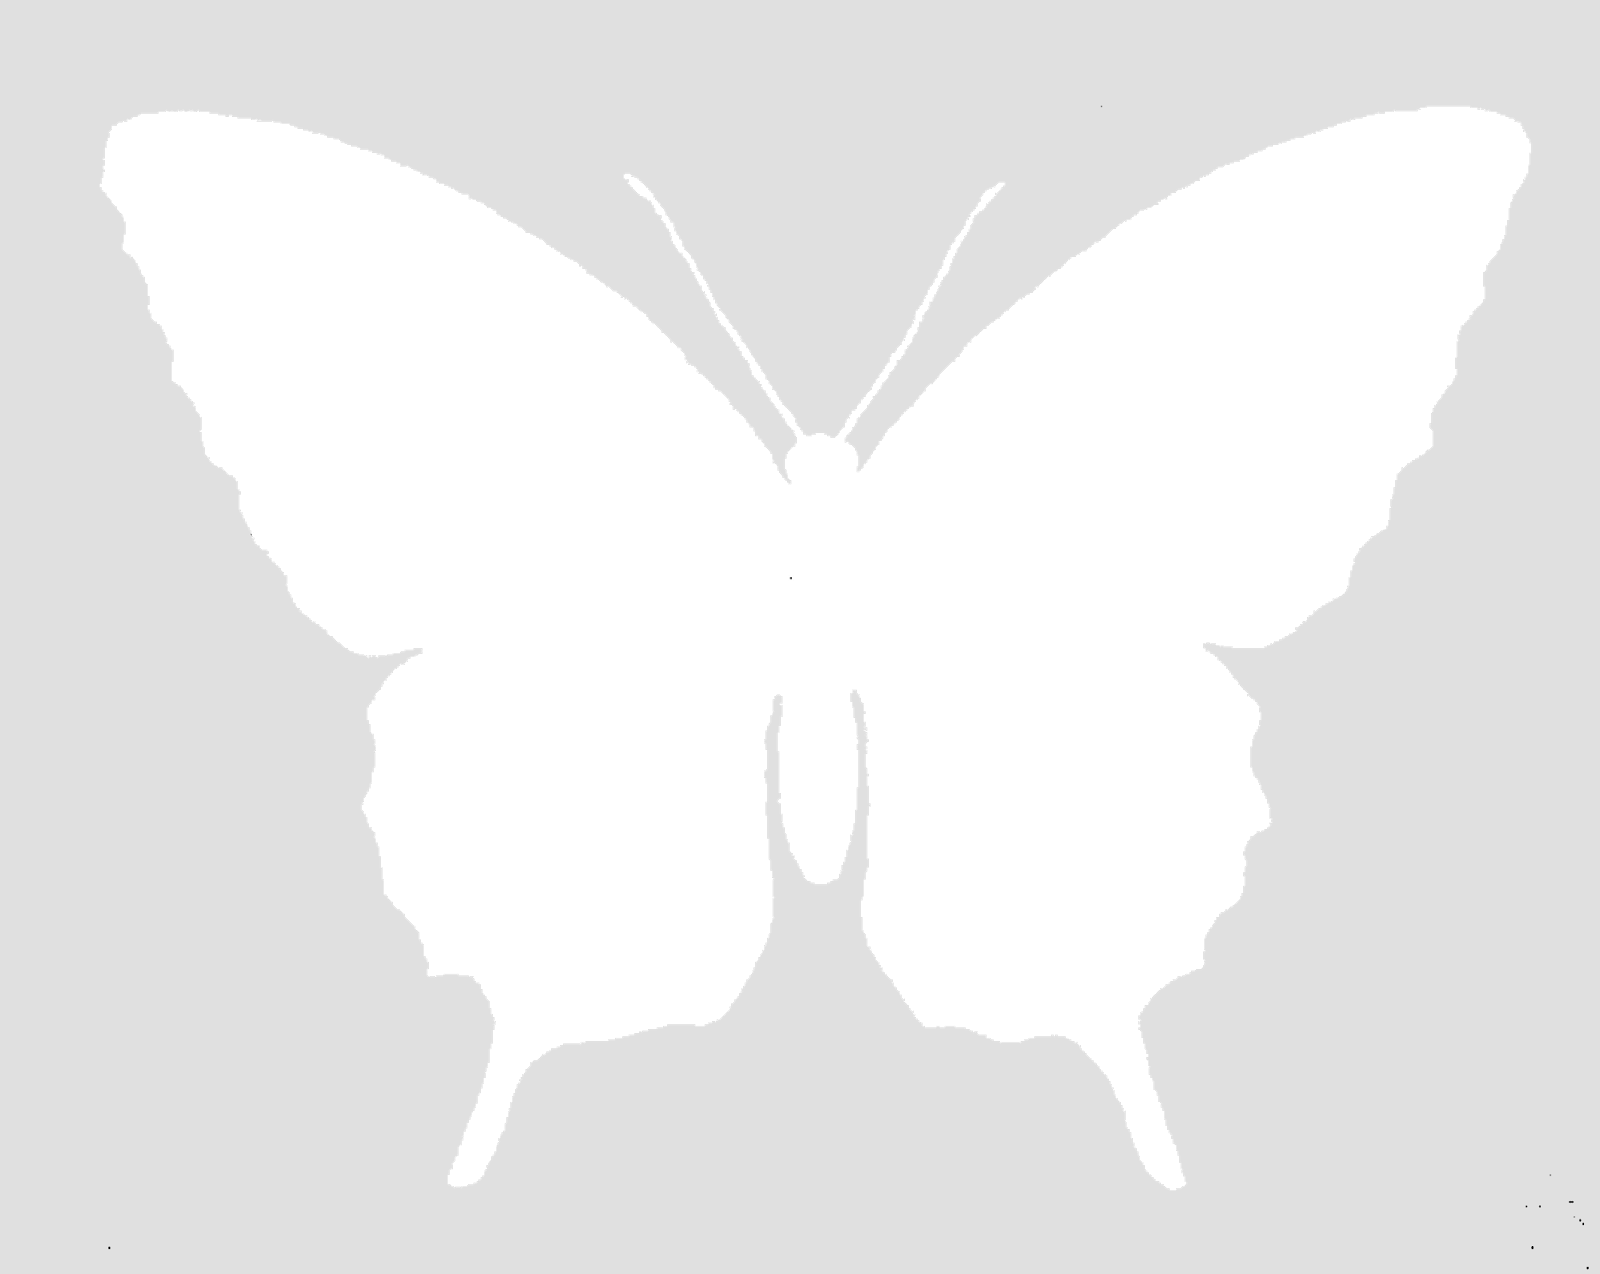 Monarch free butterfly silhouette image grayscale digital supplies - The Graphics Monarch Free Butterfly Silhouette Image